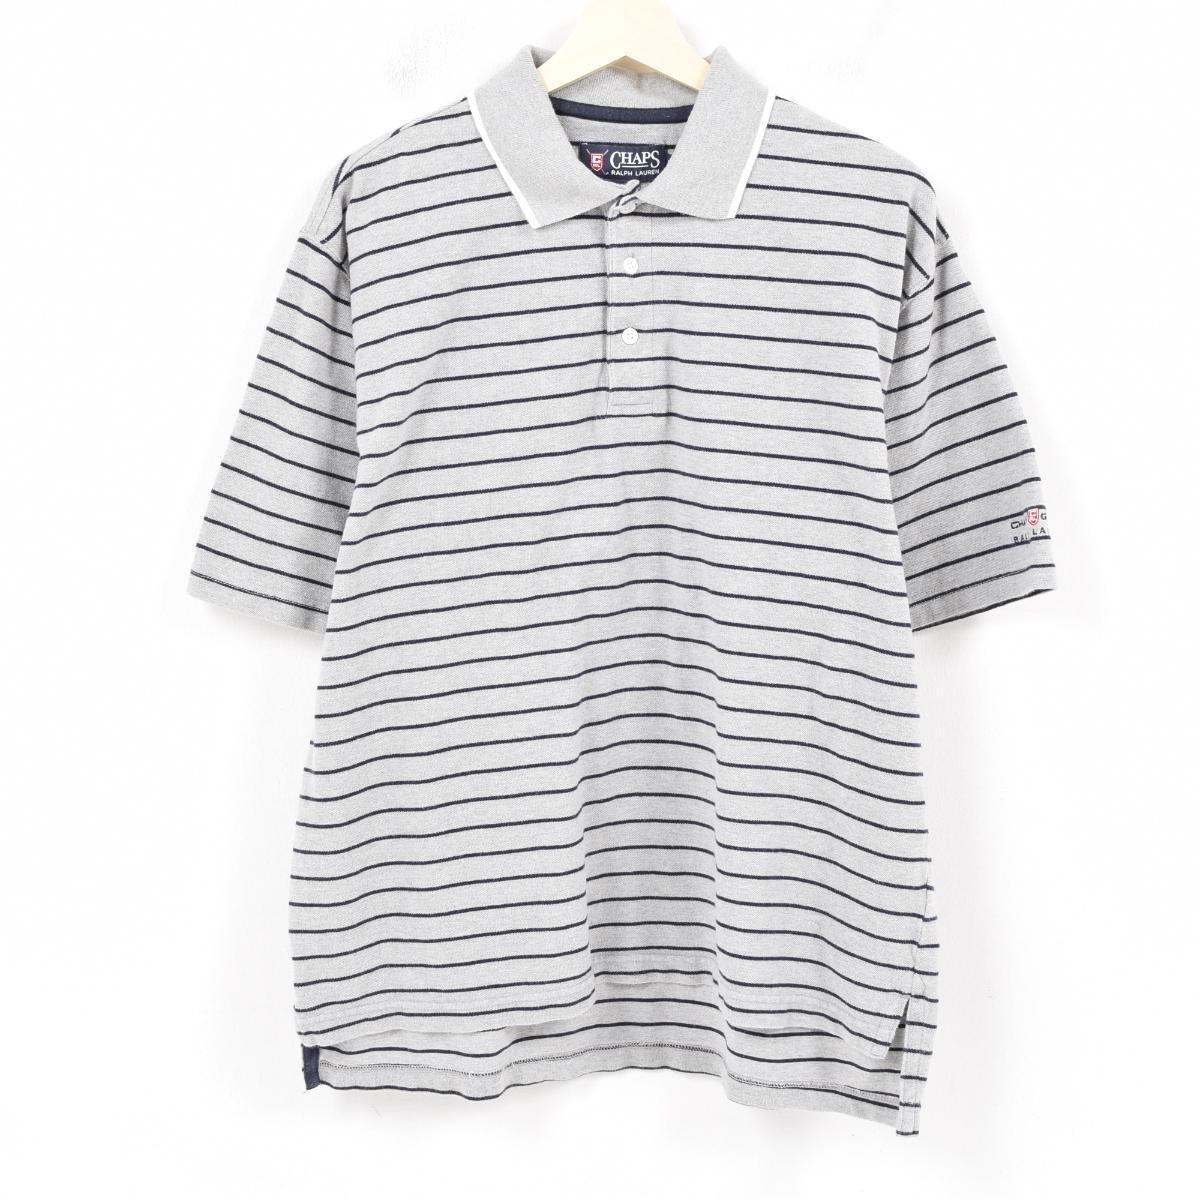 8a4e0bf668 90s Ralph Lauren Ralph Lauren CHAPS Clearing House Automated Payments  System short-sleeved horizontal stripe ...